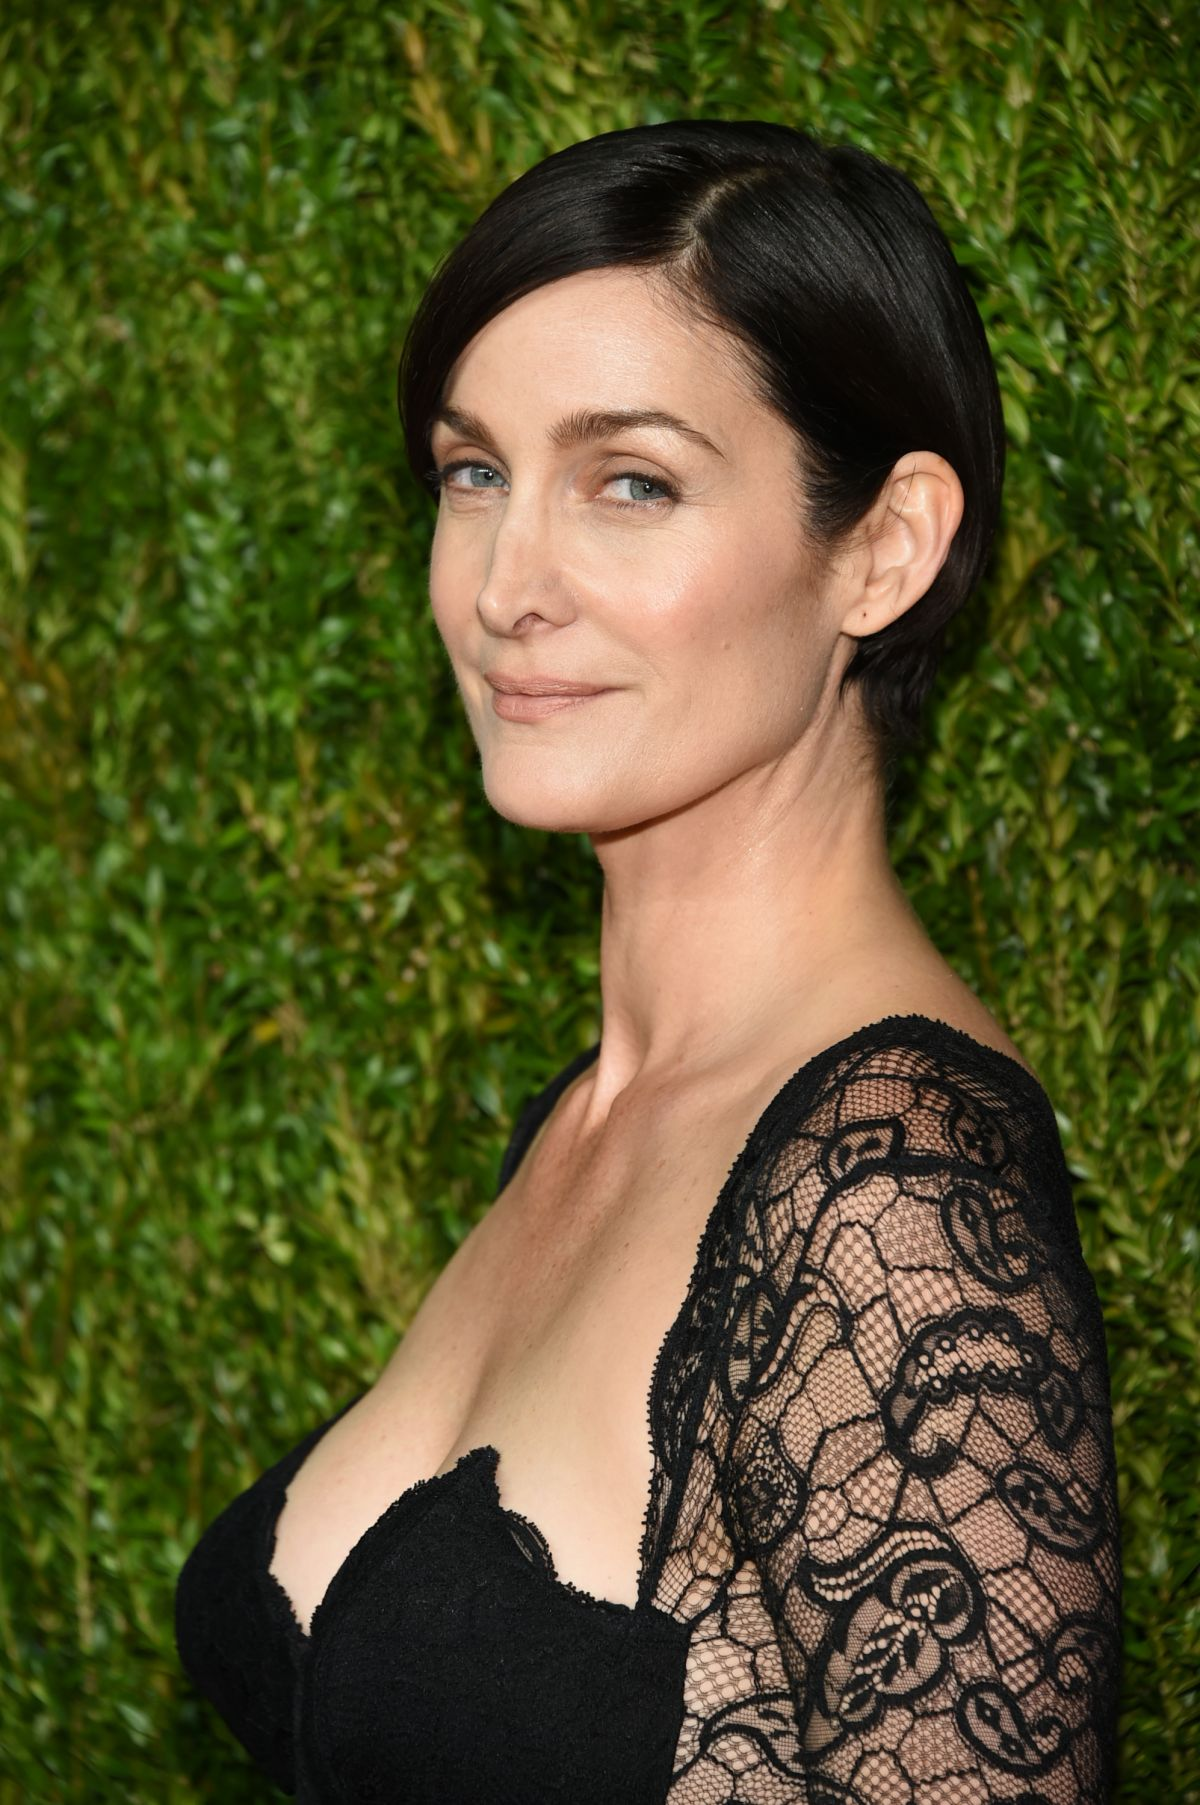 CARRIE-ANNE MOSS at 75th Annual Peabody Awards in New York